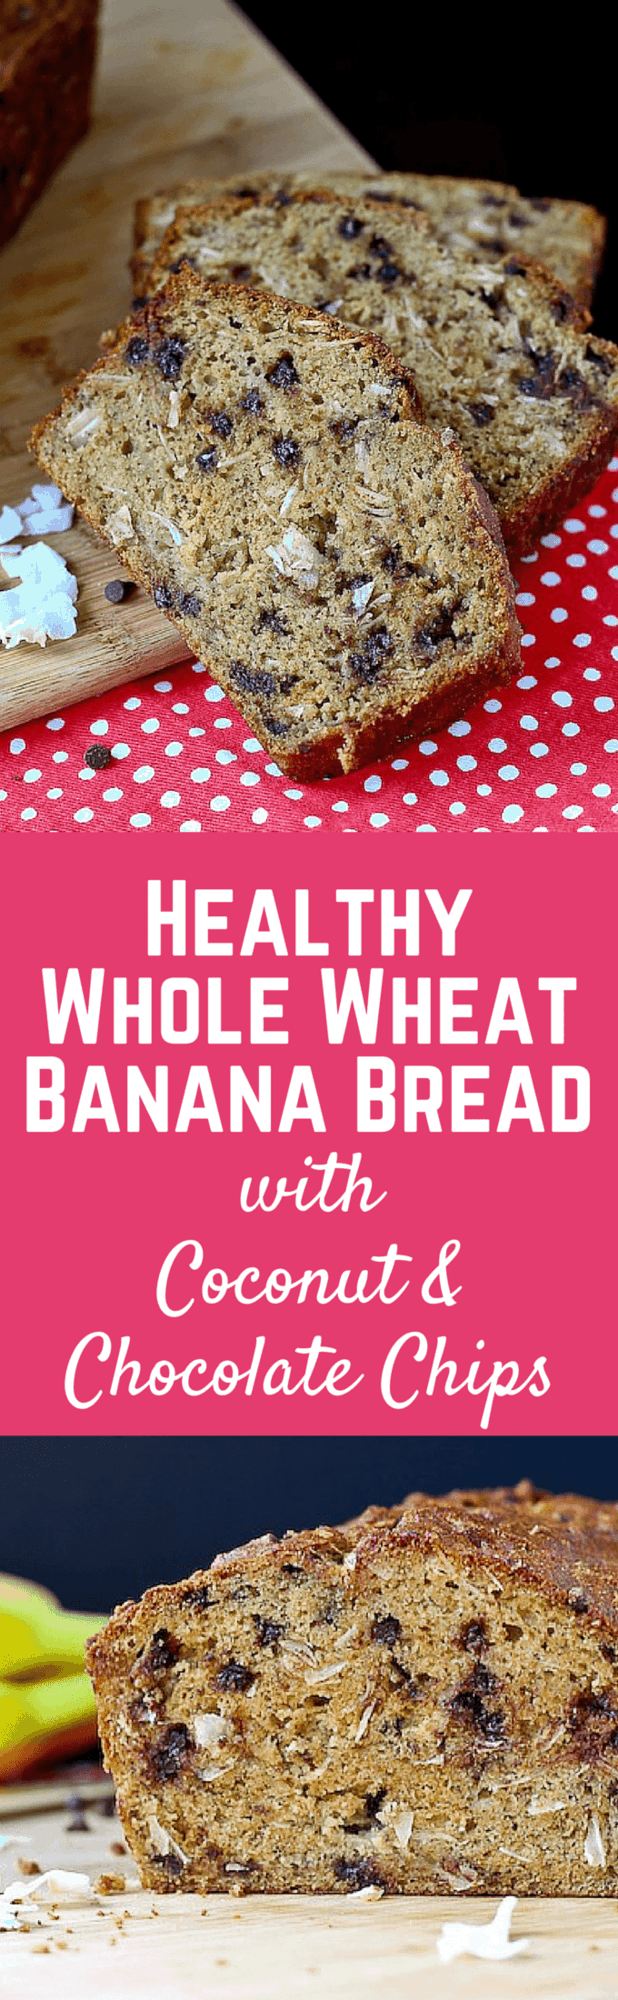 Healthy Whole Wheat Banana Bread with Chocolate and Coconut - get the easy and delicious recipe on RachelCooks.com!